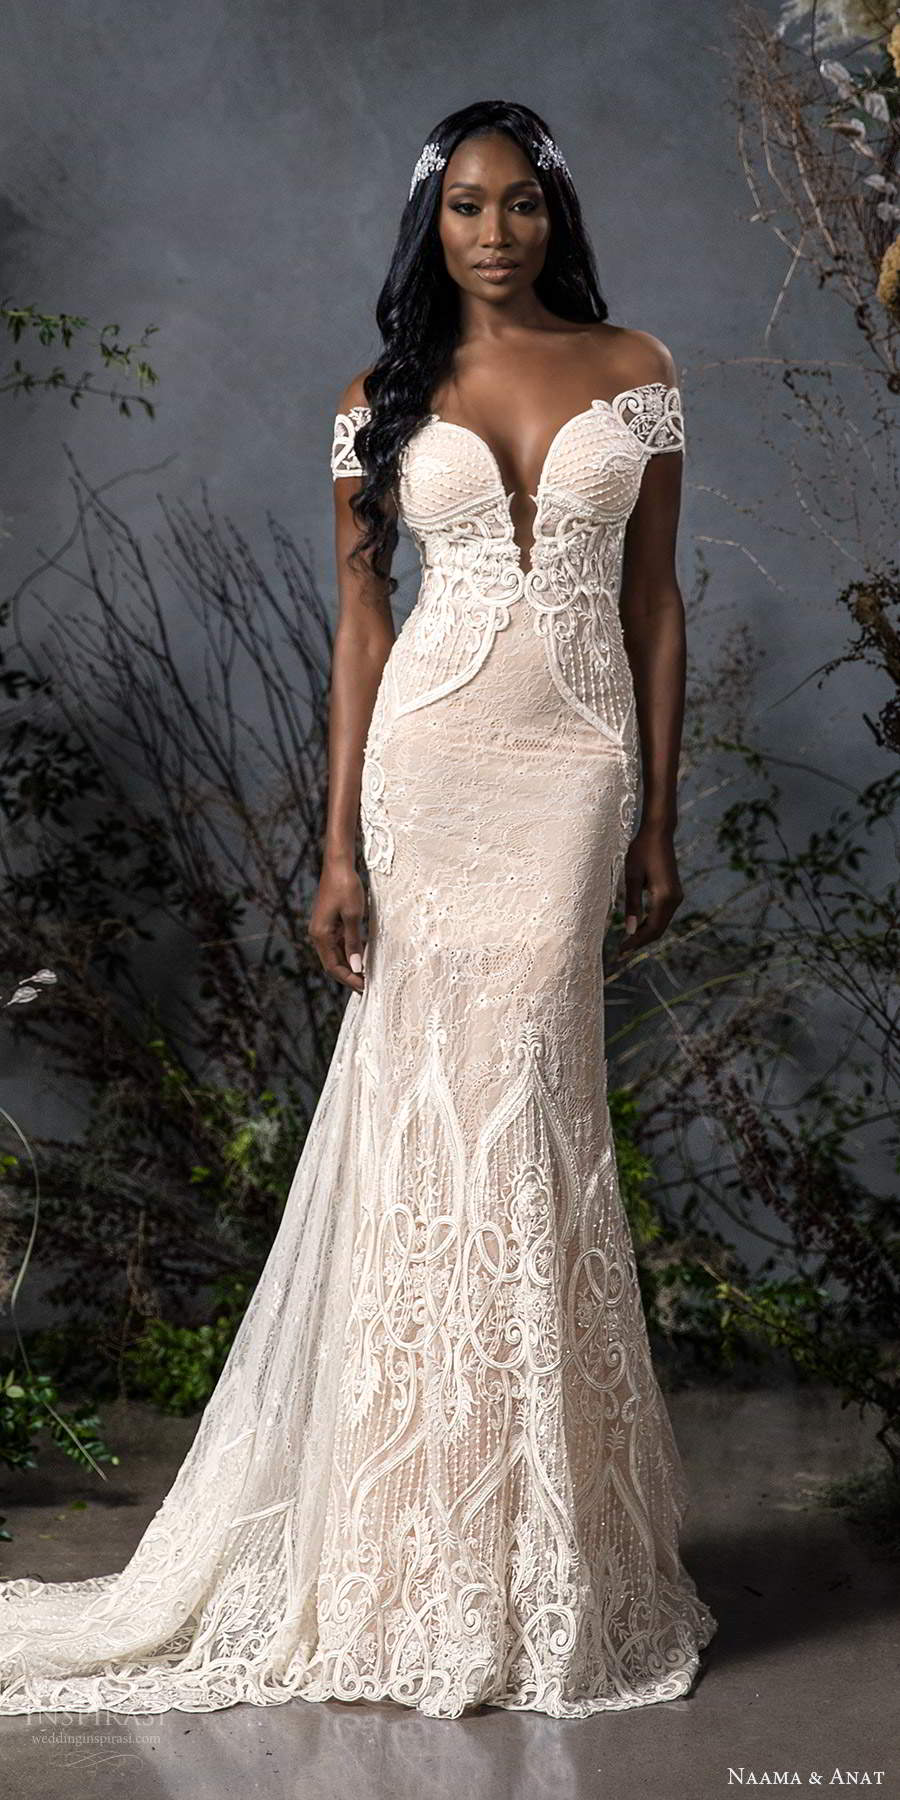 naama anat fall 2020 bridal off shoulder sweetheart neckline fully embellished fit flare wedding dress chapel train illusion back (3) mv